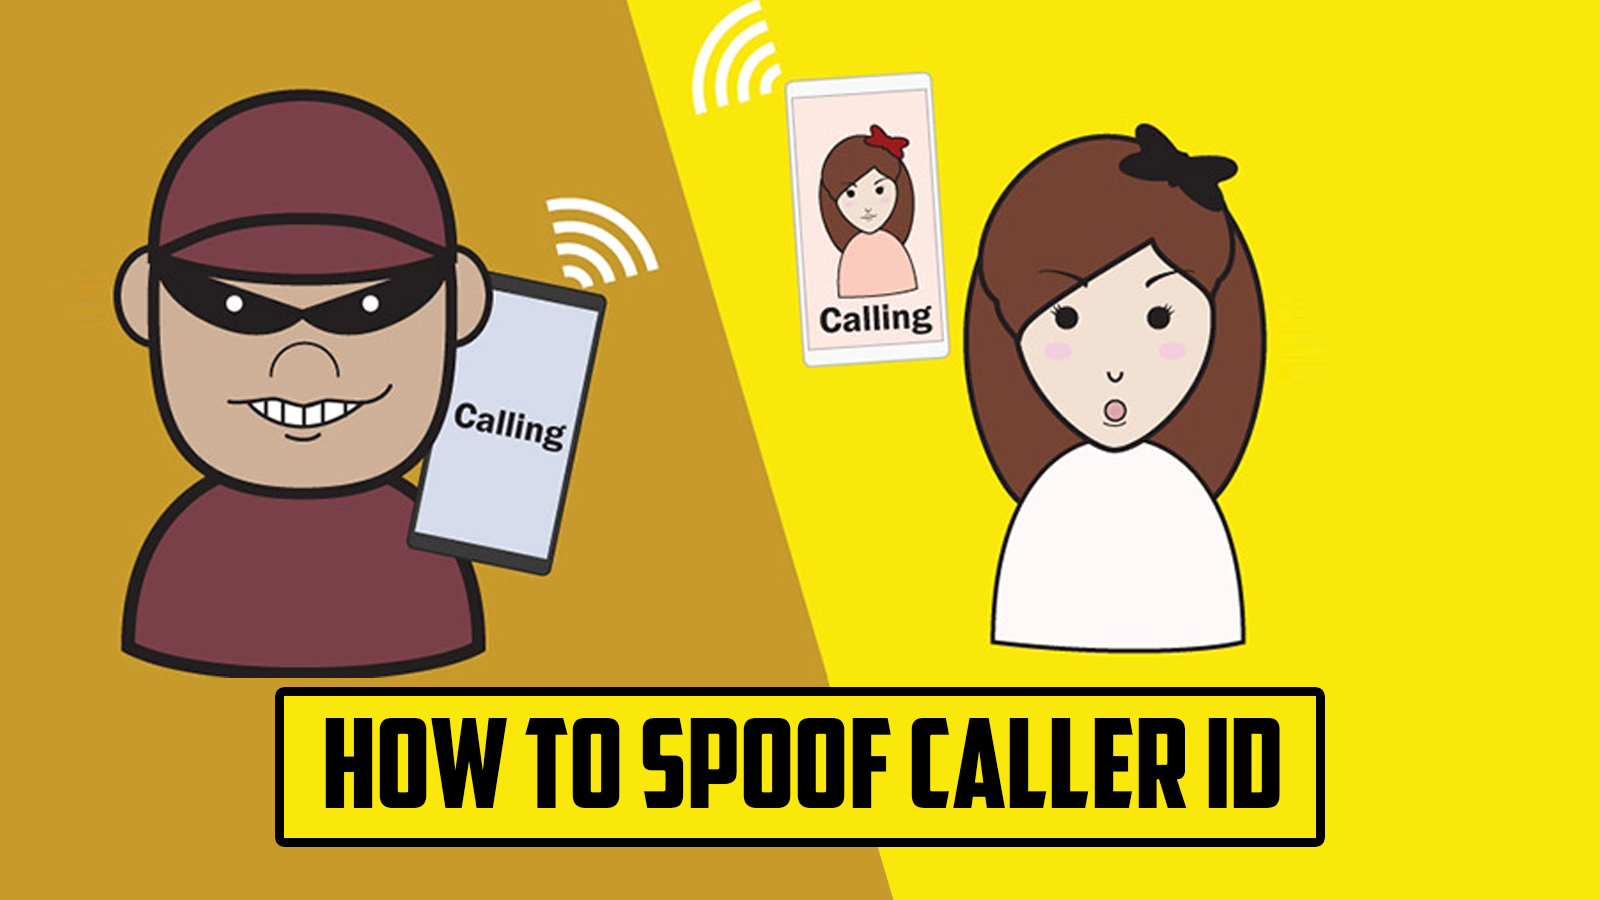 6 Websites for Making Fake Calls or Spoof Calls - HaxBaba Tech